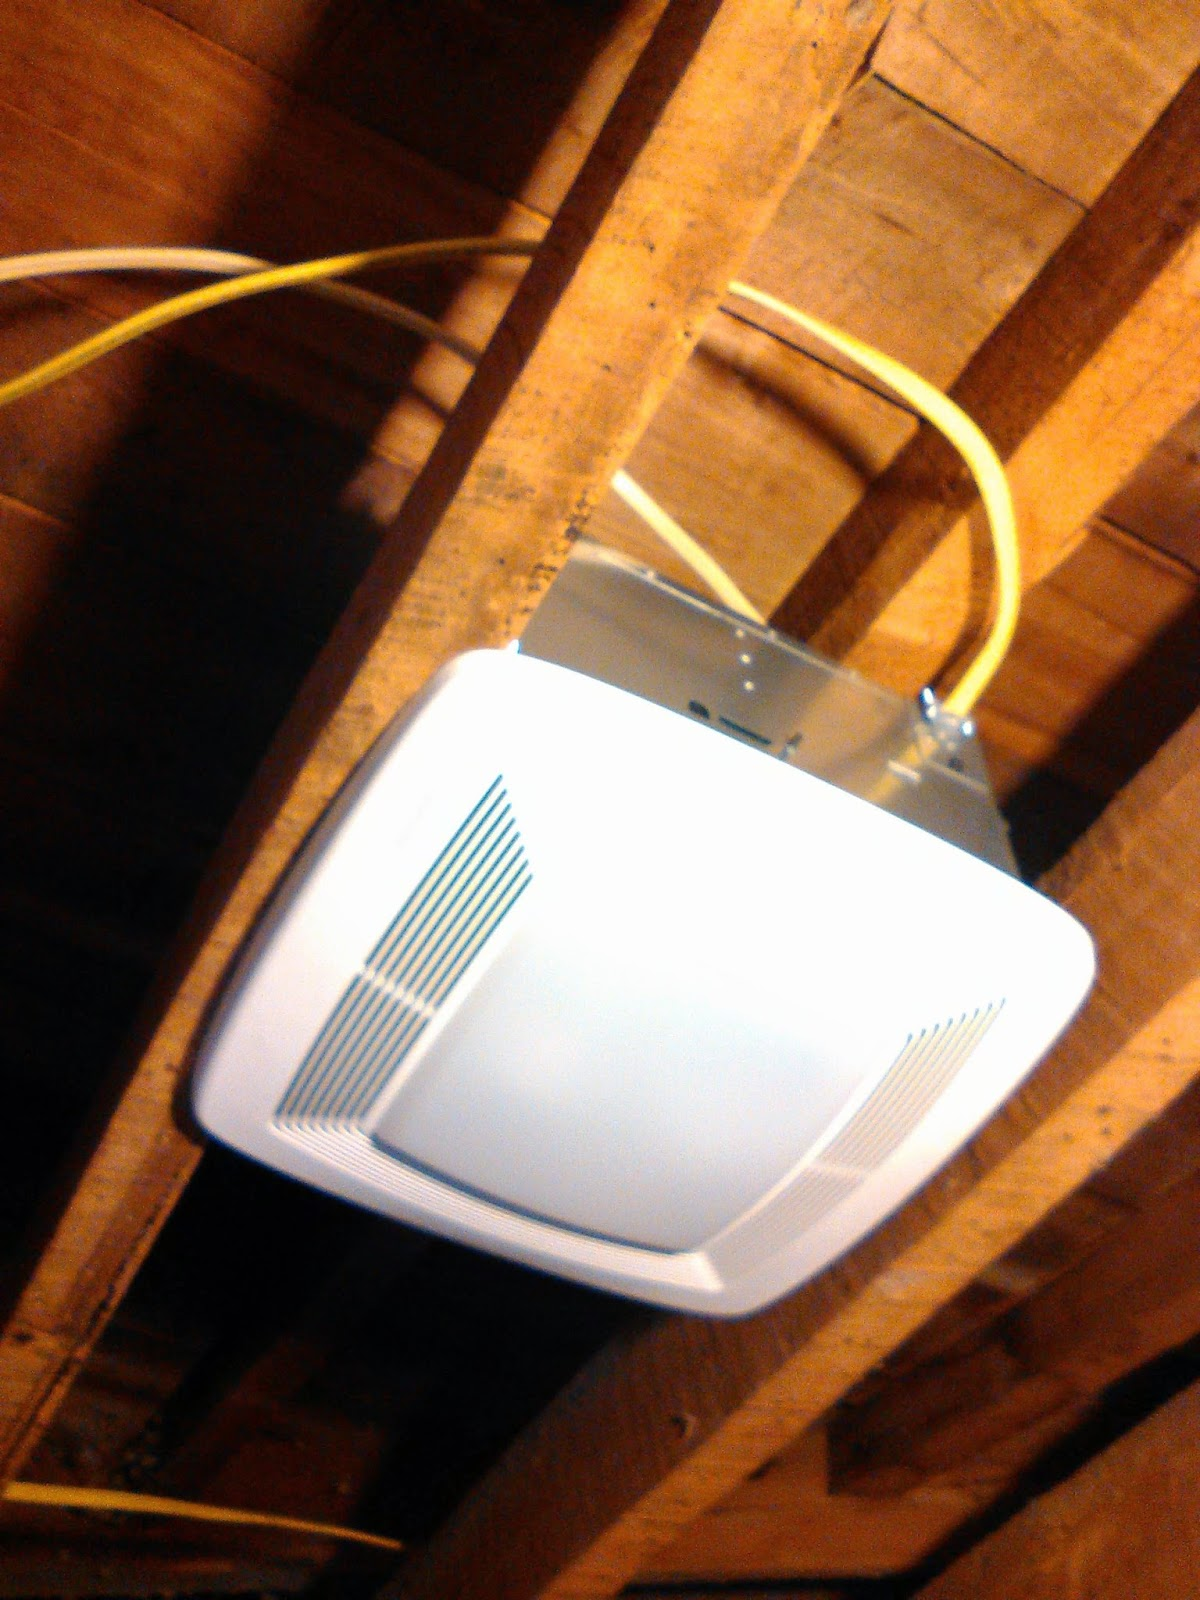 Vanity Light Gfci : the common milkweed: Bathroom Remodel: wiring finished, bit of structural engineering and a ...